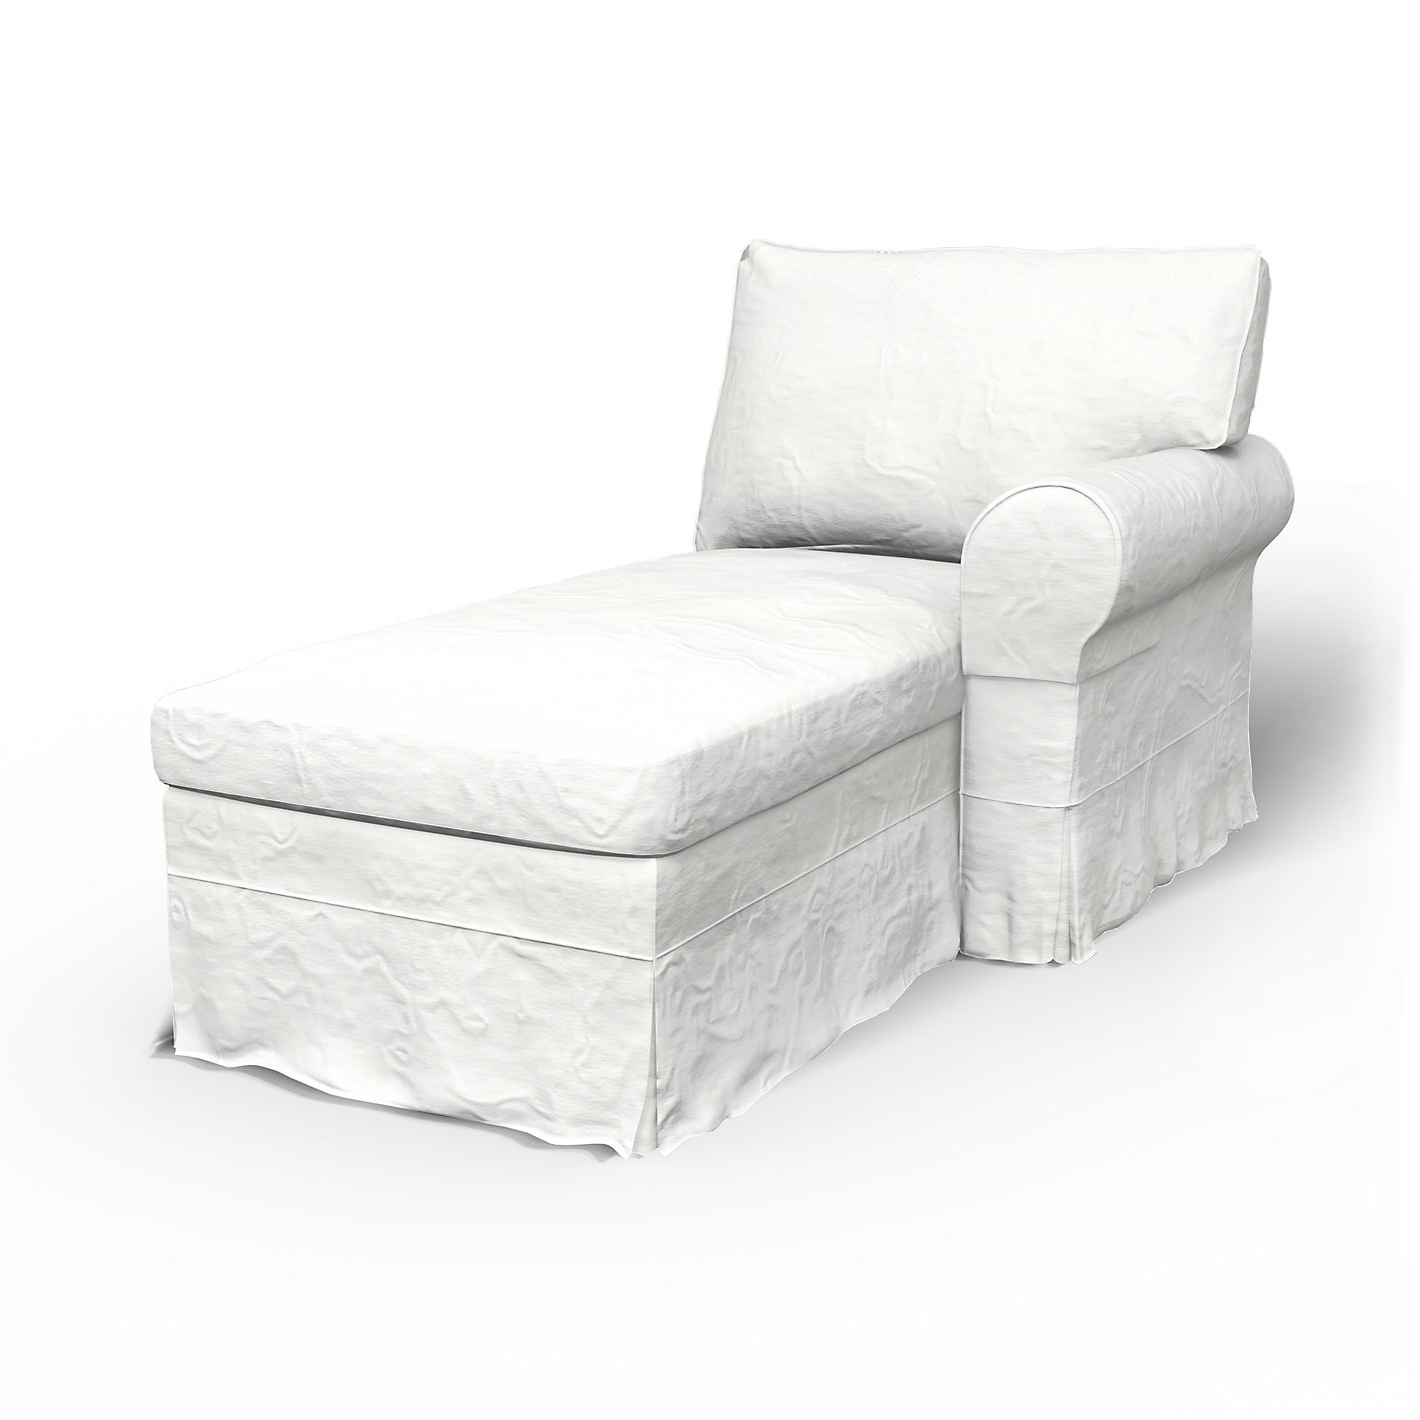 Cover For Chaise Lounge Chair • Lounge Chairs Ideas Pertaining To Popular Chaise Lounge Chairs With Arms Slipcover (View 10 of 15)